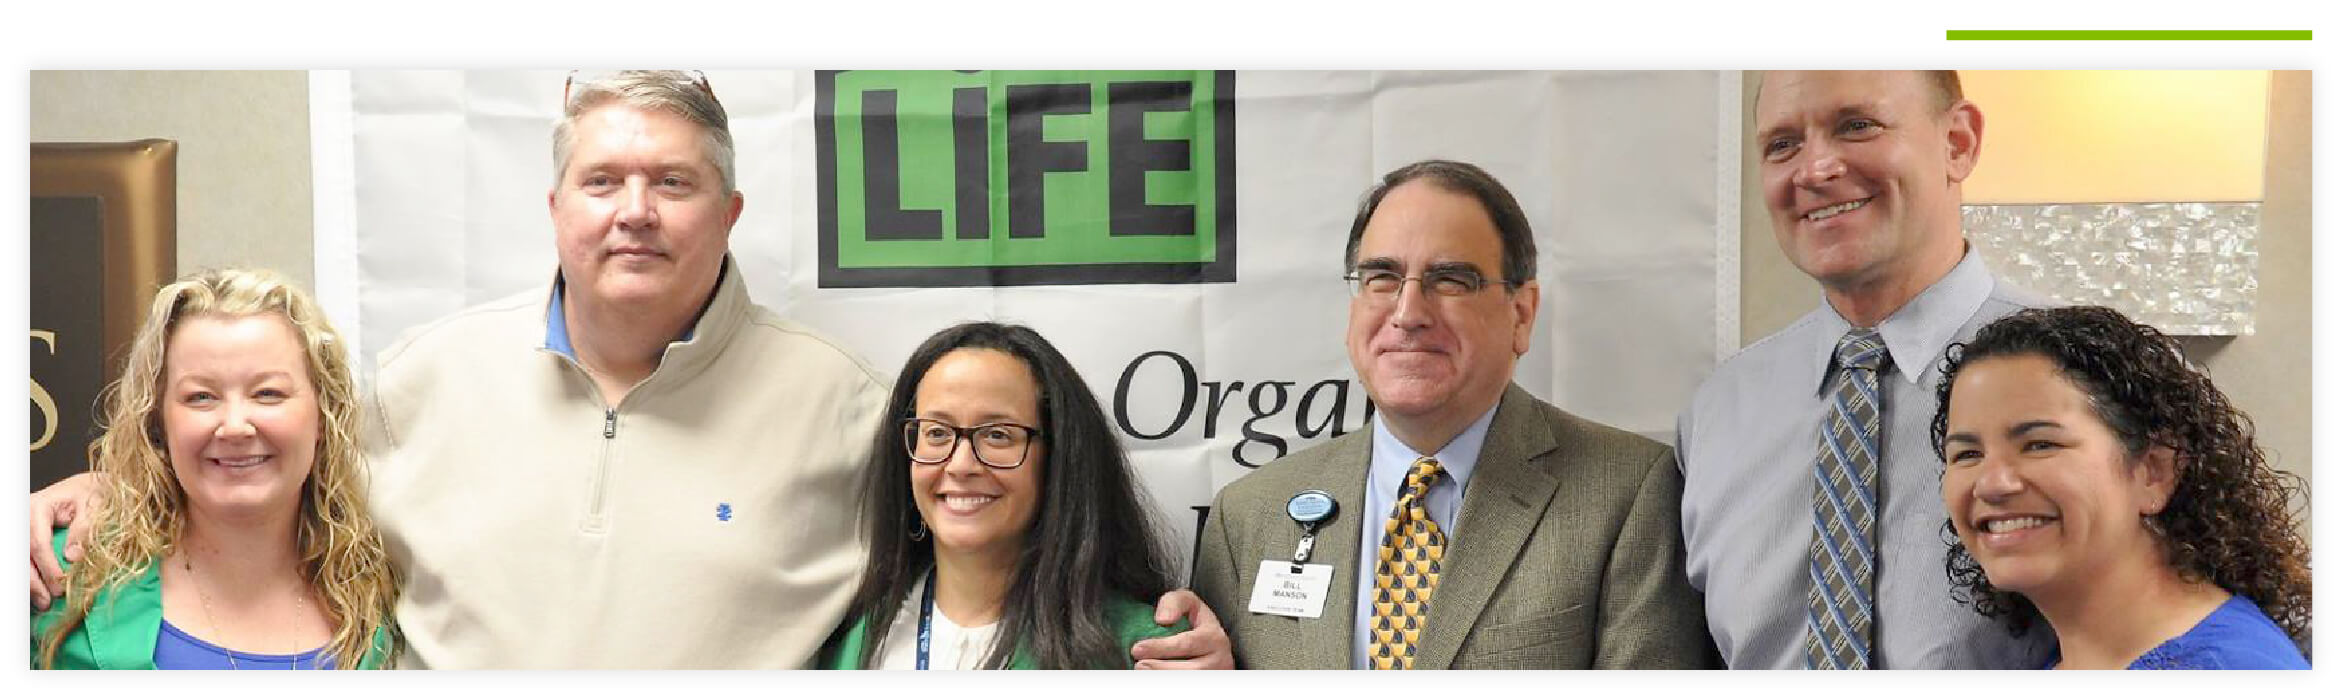 Group of six We Are Sharing Hope SC and Donate Life South Carolina employees smiling and standing in front of a Donate Life South Carolina banner.